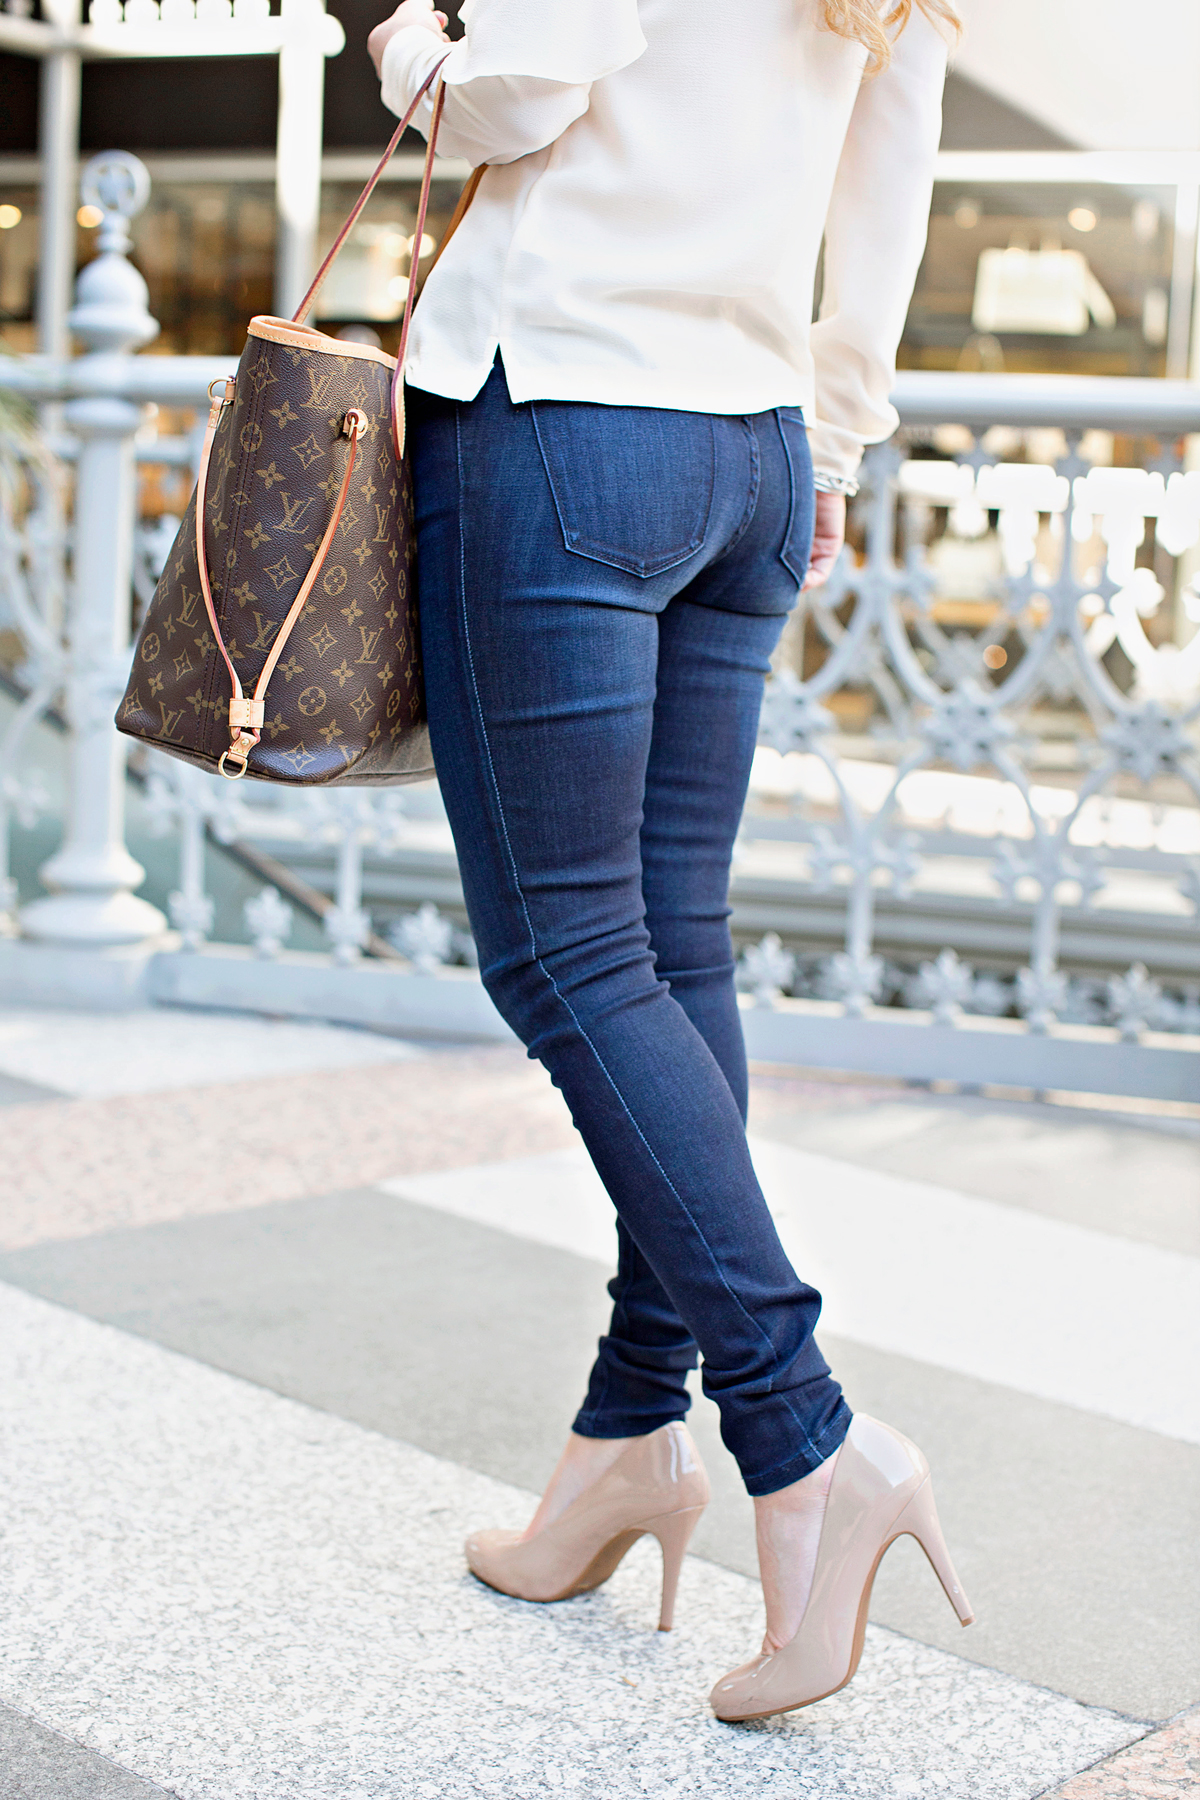 The best and most flattering jeans | What to wear for meetings | Work meetings | Casual Meeting Attire | Casual jeans look | Easy look with jeans | white ruffle top | effortless everyday look